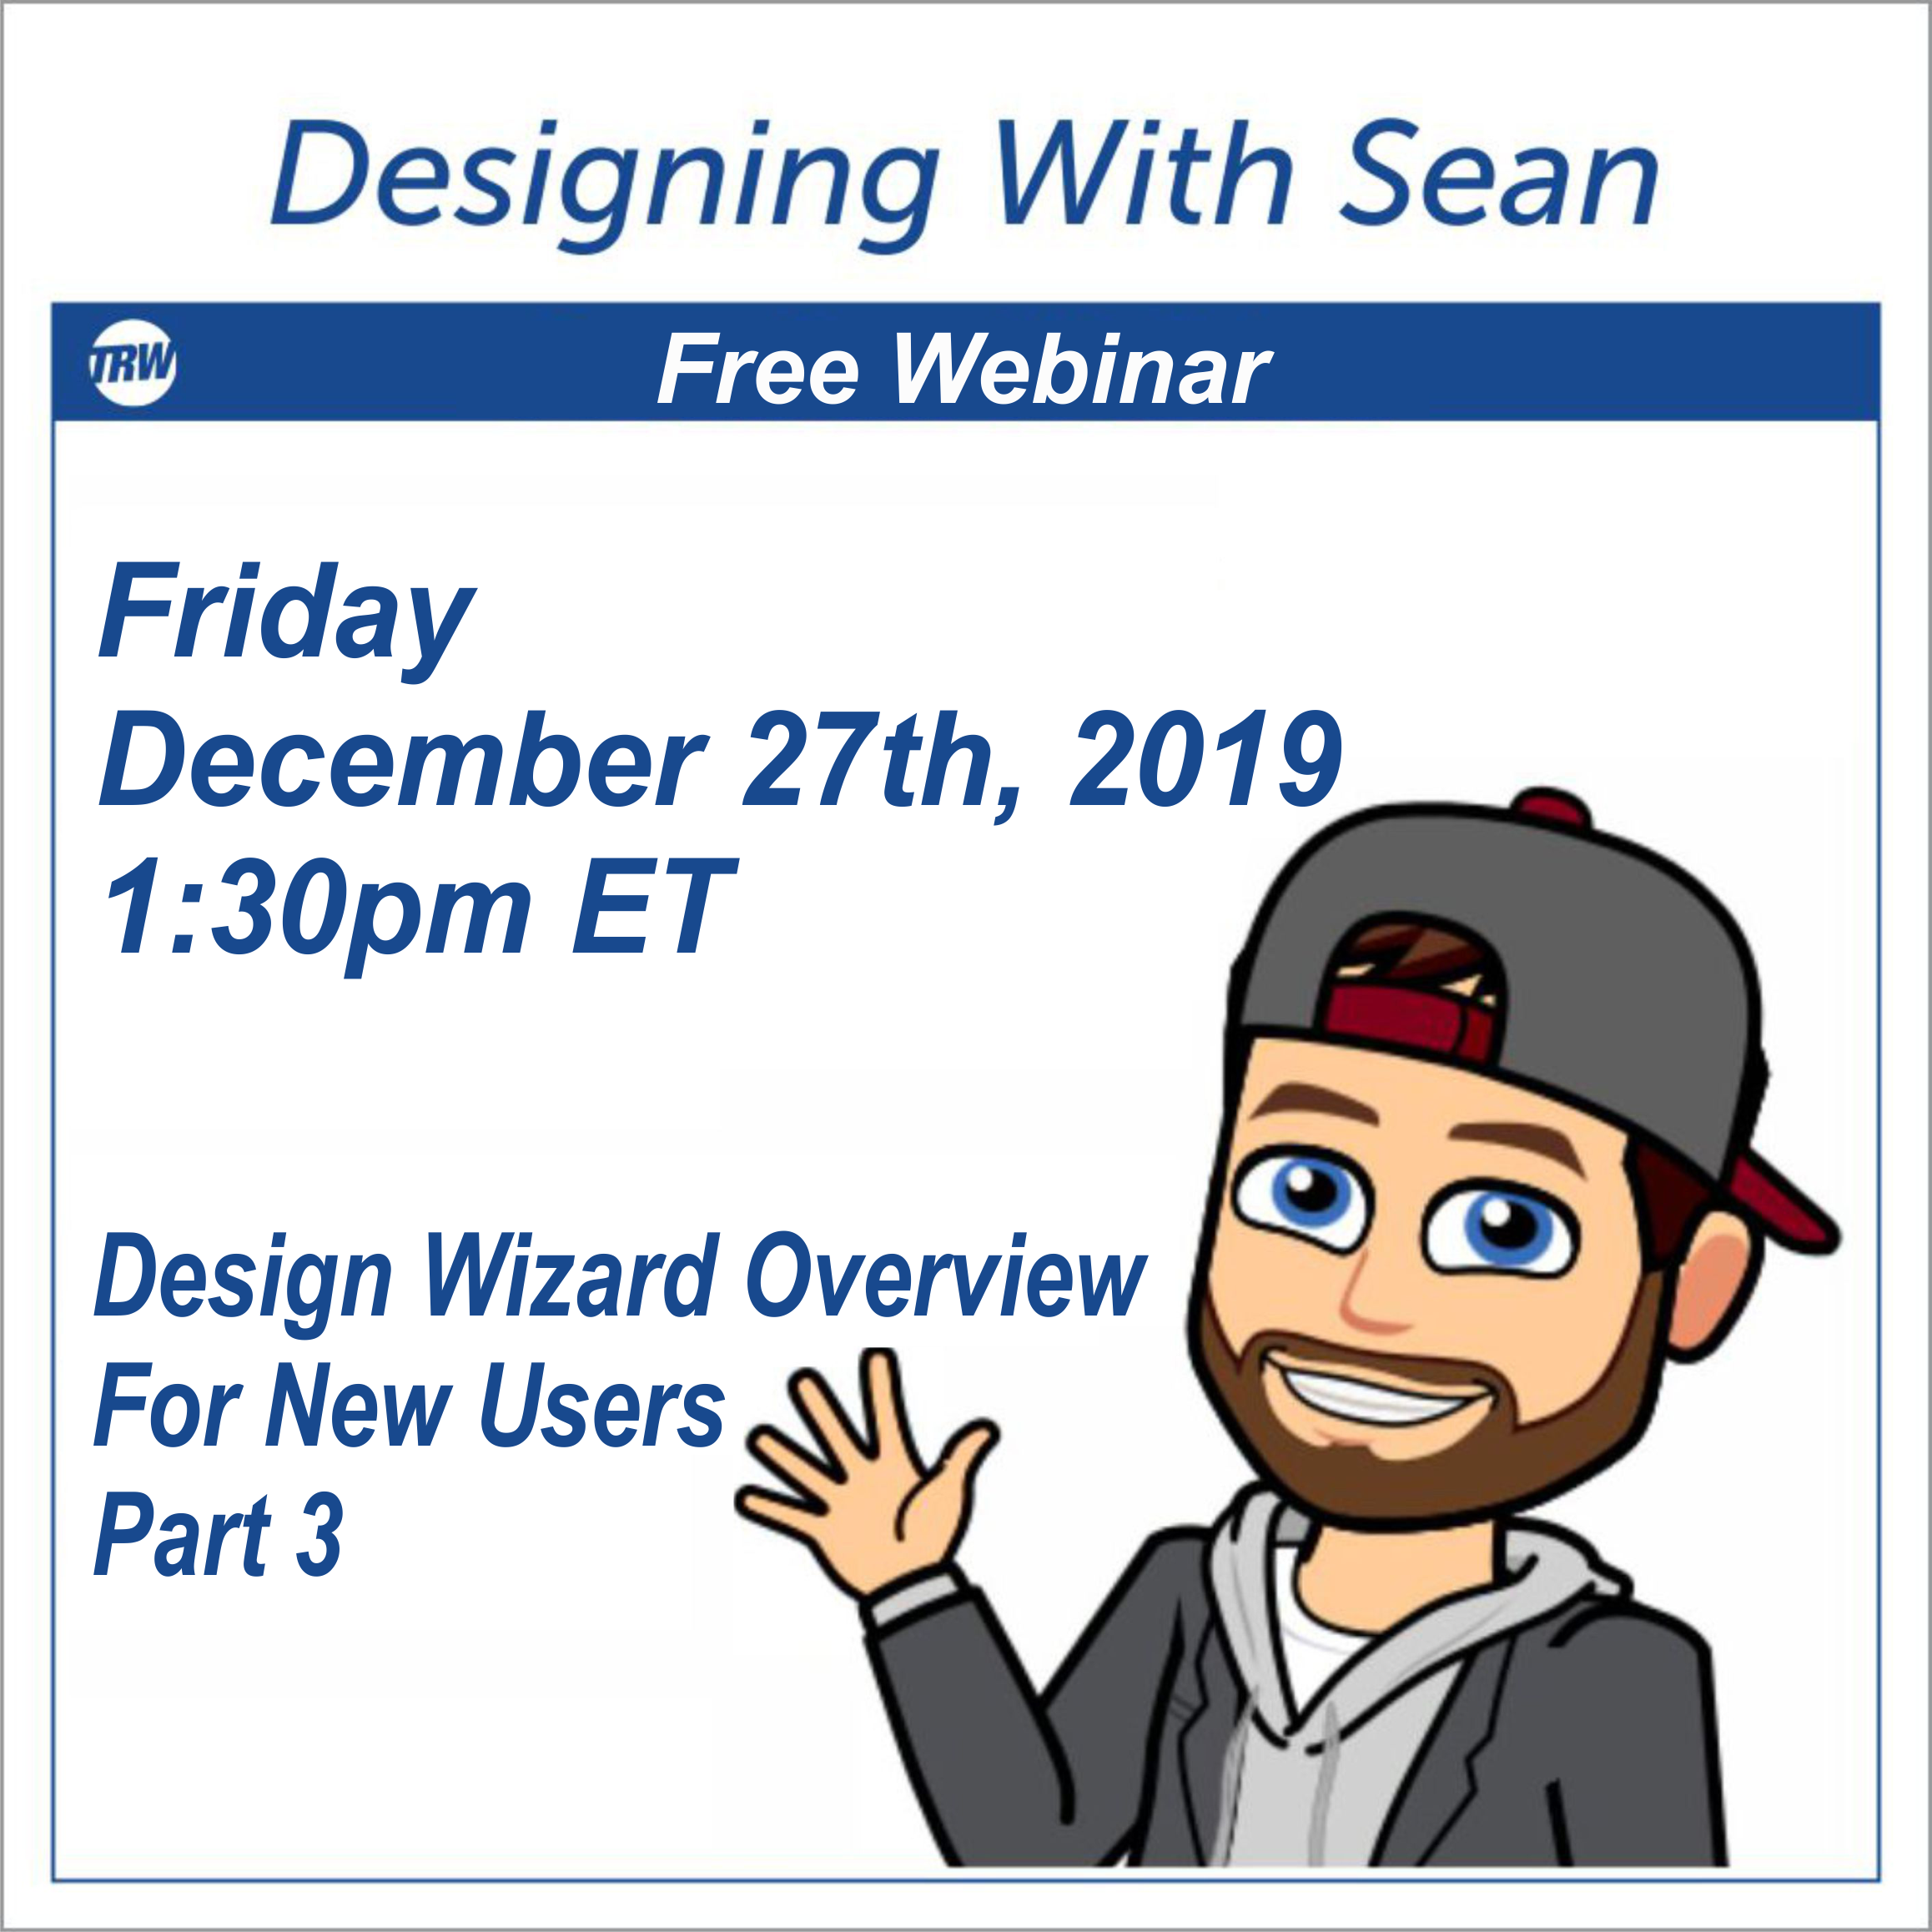 Designing with Sean | Overview of the Design Wizard for New Users Part 3 - December 27th 2019